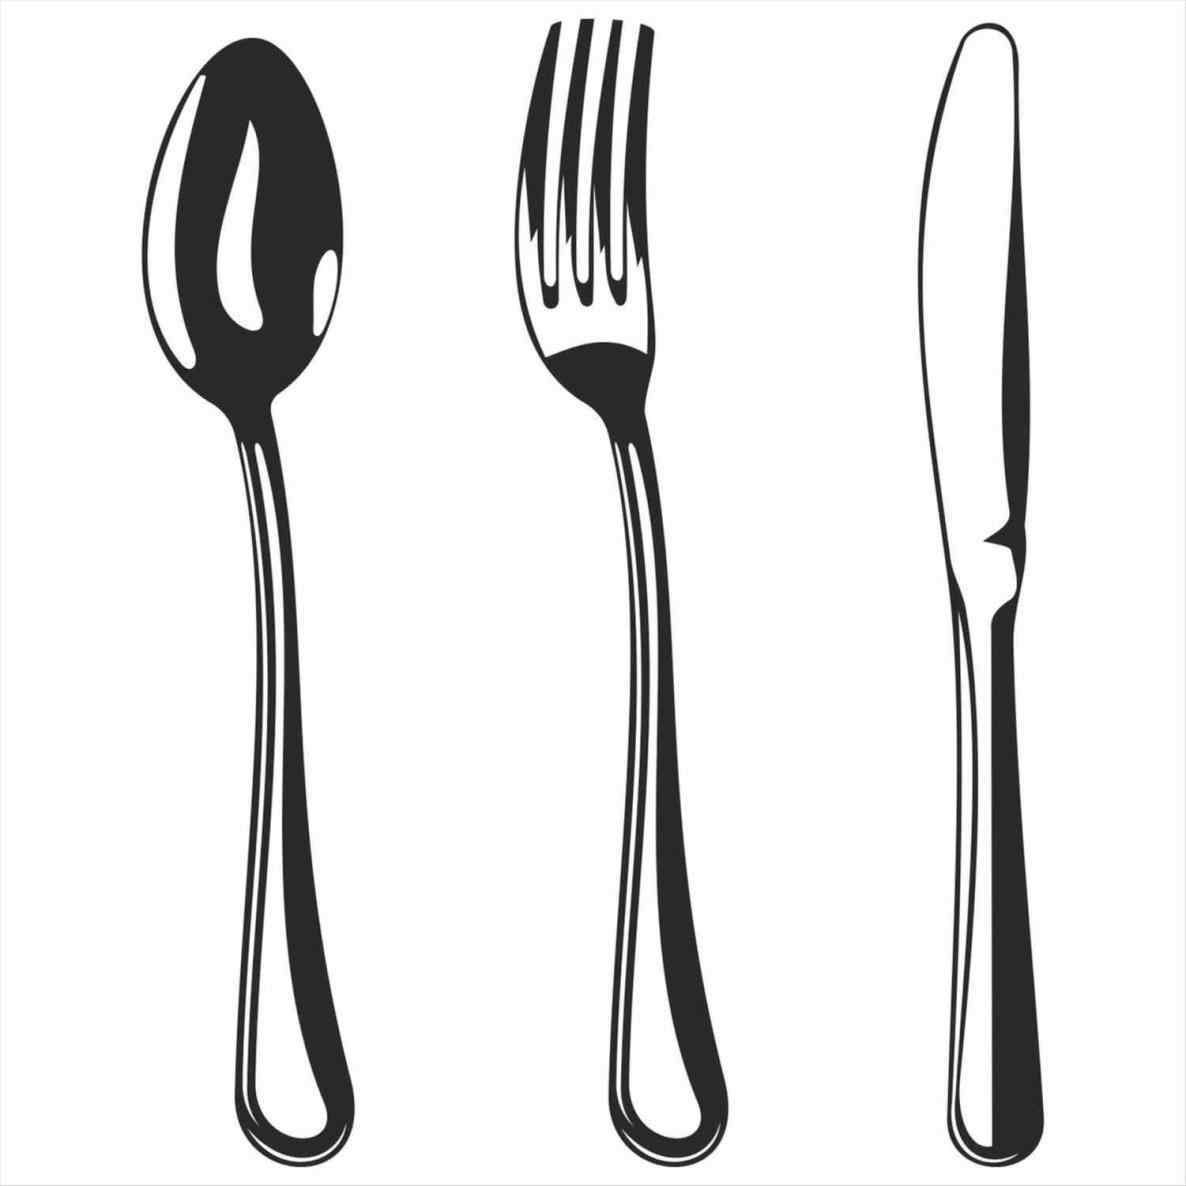 Stunning Color The Kitchen Utensils Clipart Black And White Culinary.